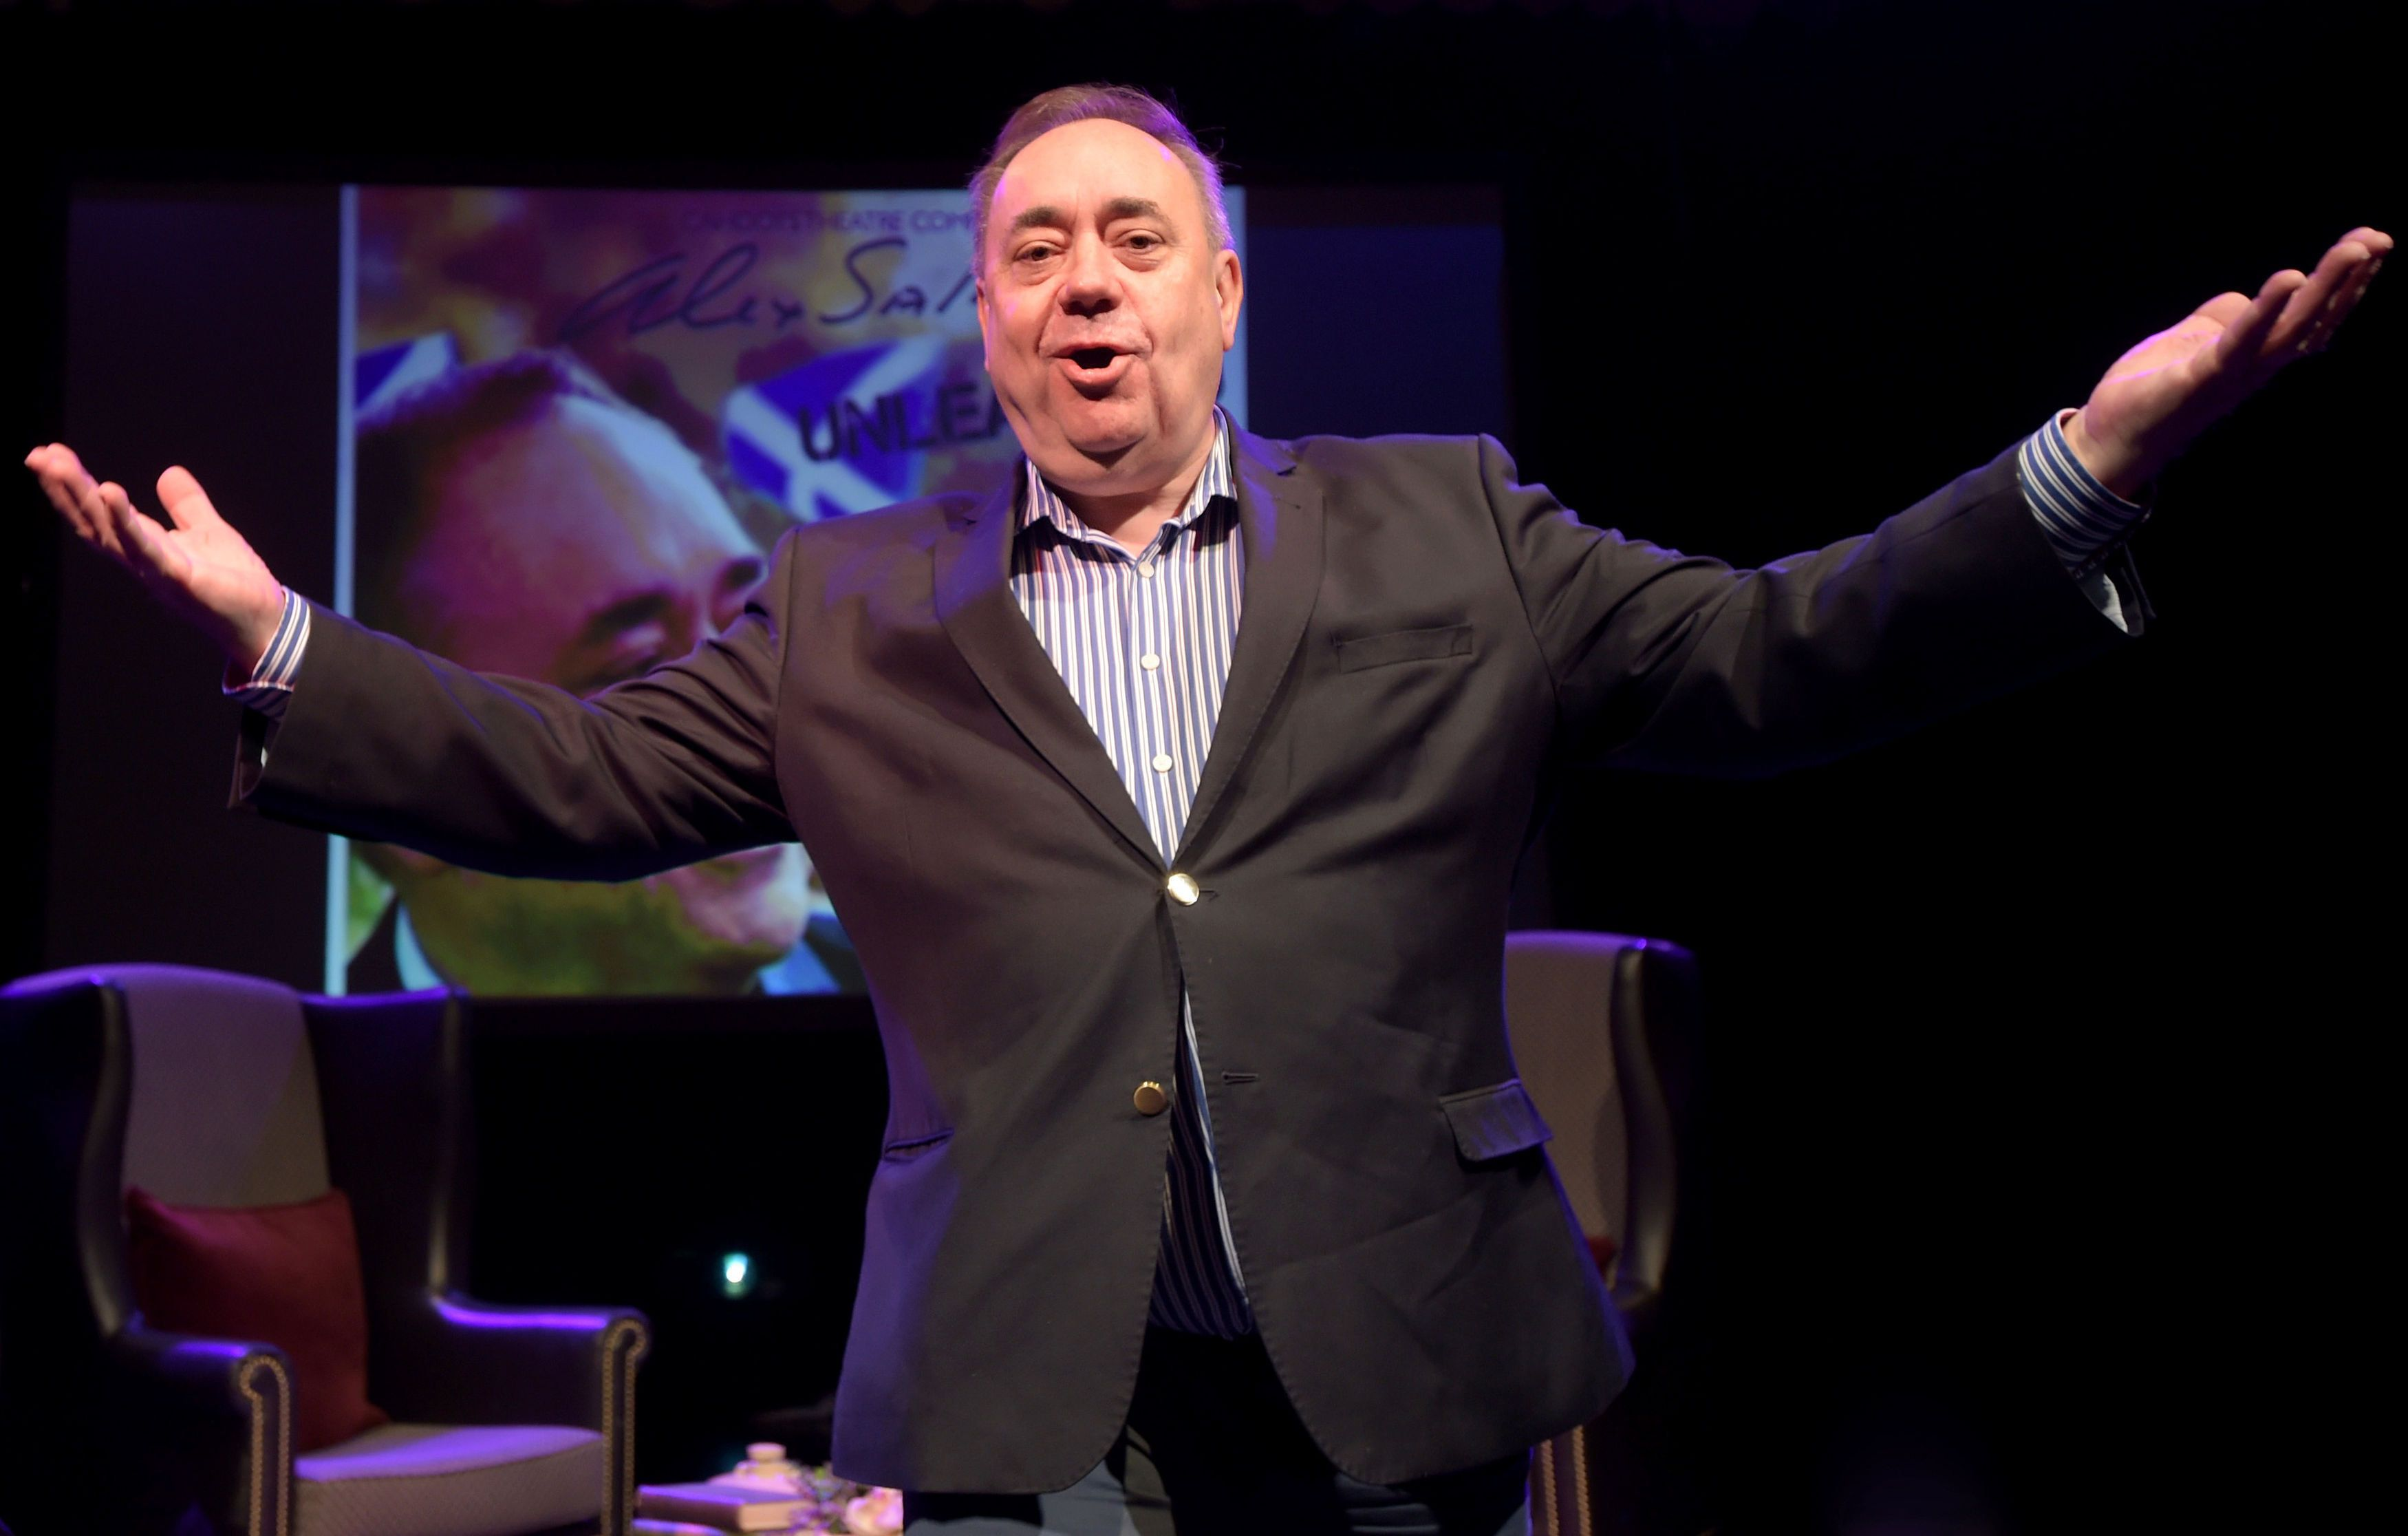 Alex Salmond Thinks Scotland Will Become Independent Within The Next Four